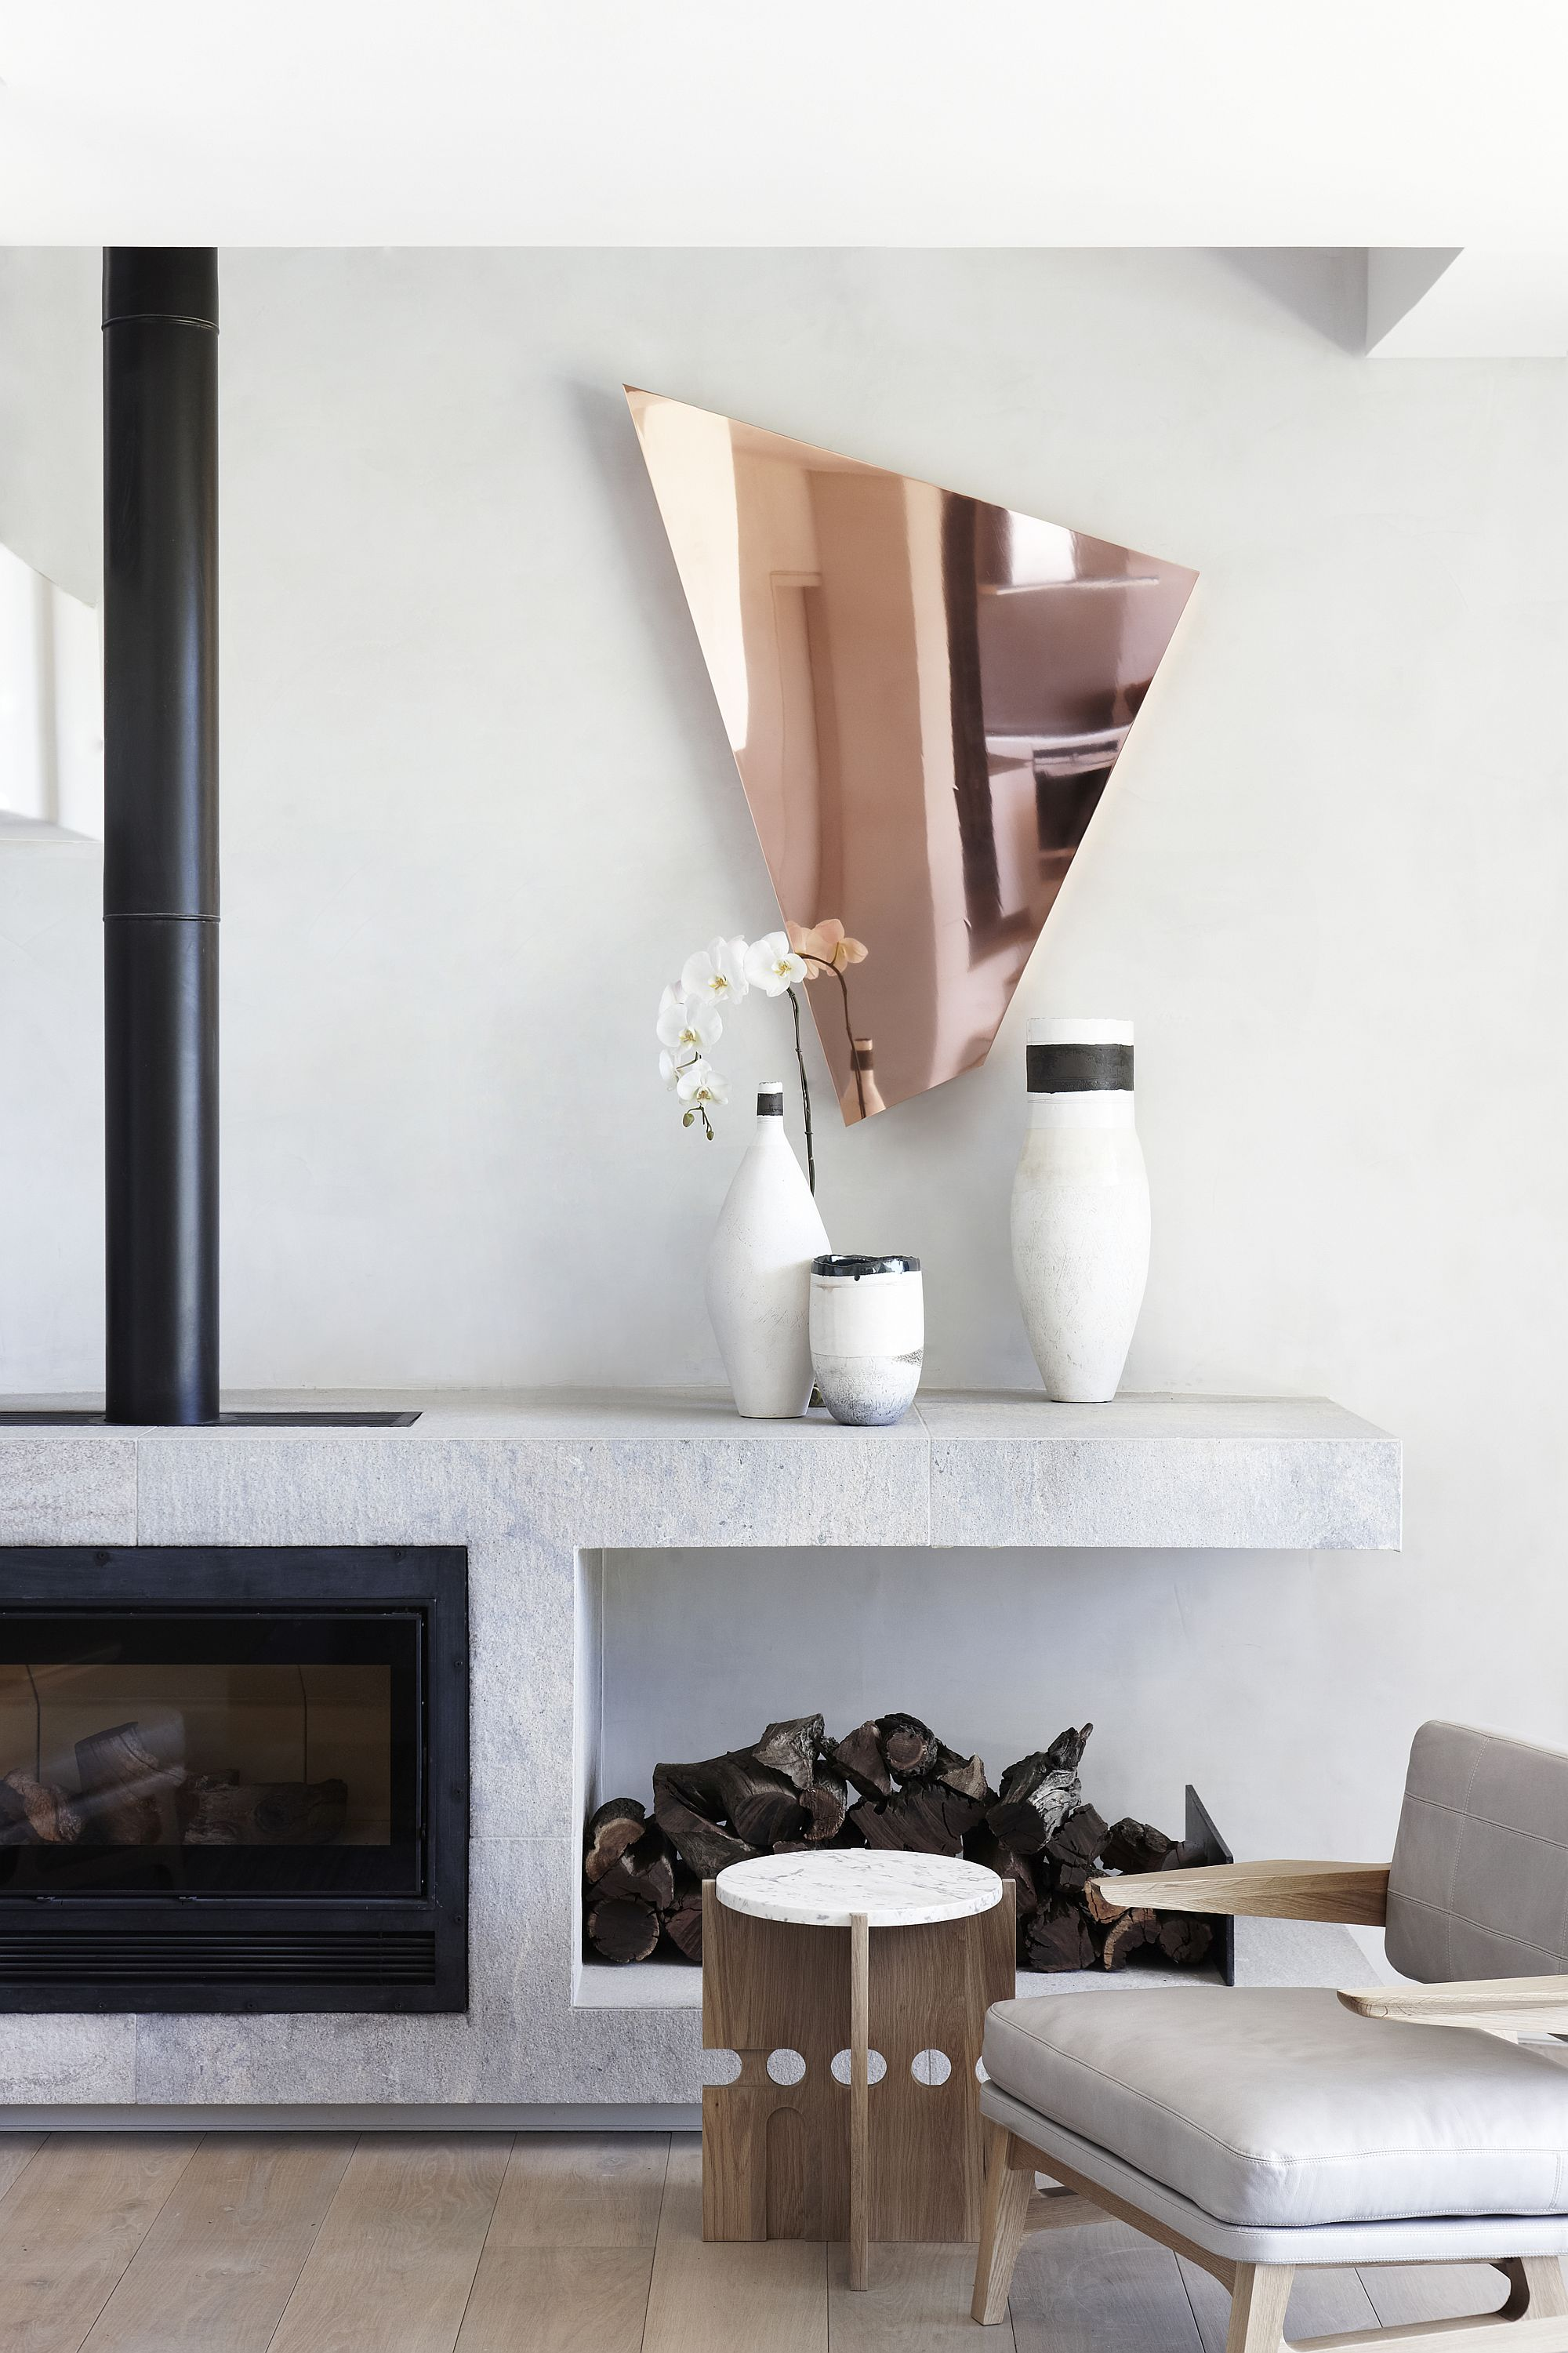 Lovely-use-of-vases-to-decorate-the-fireplace-mantel